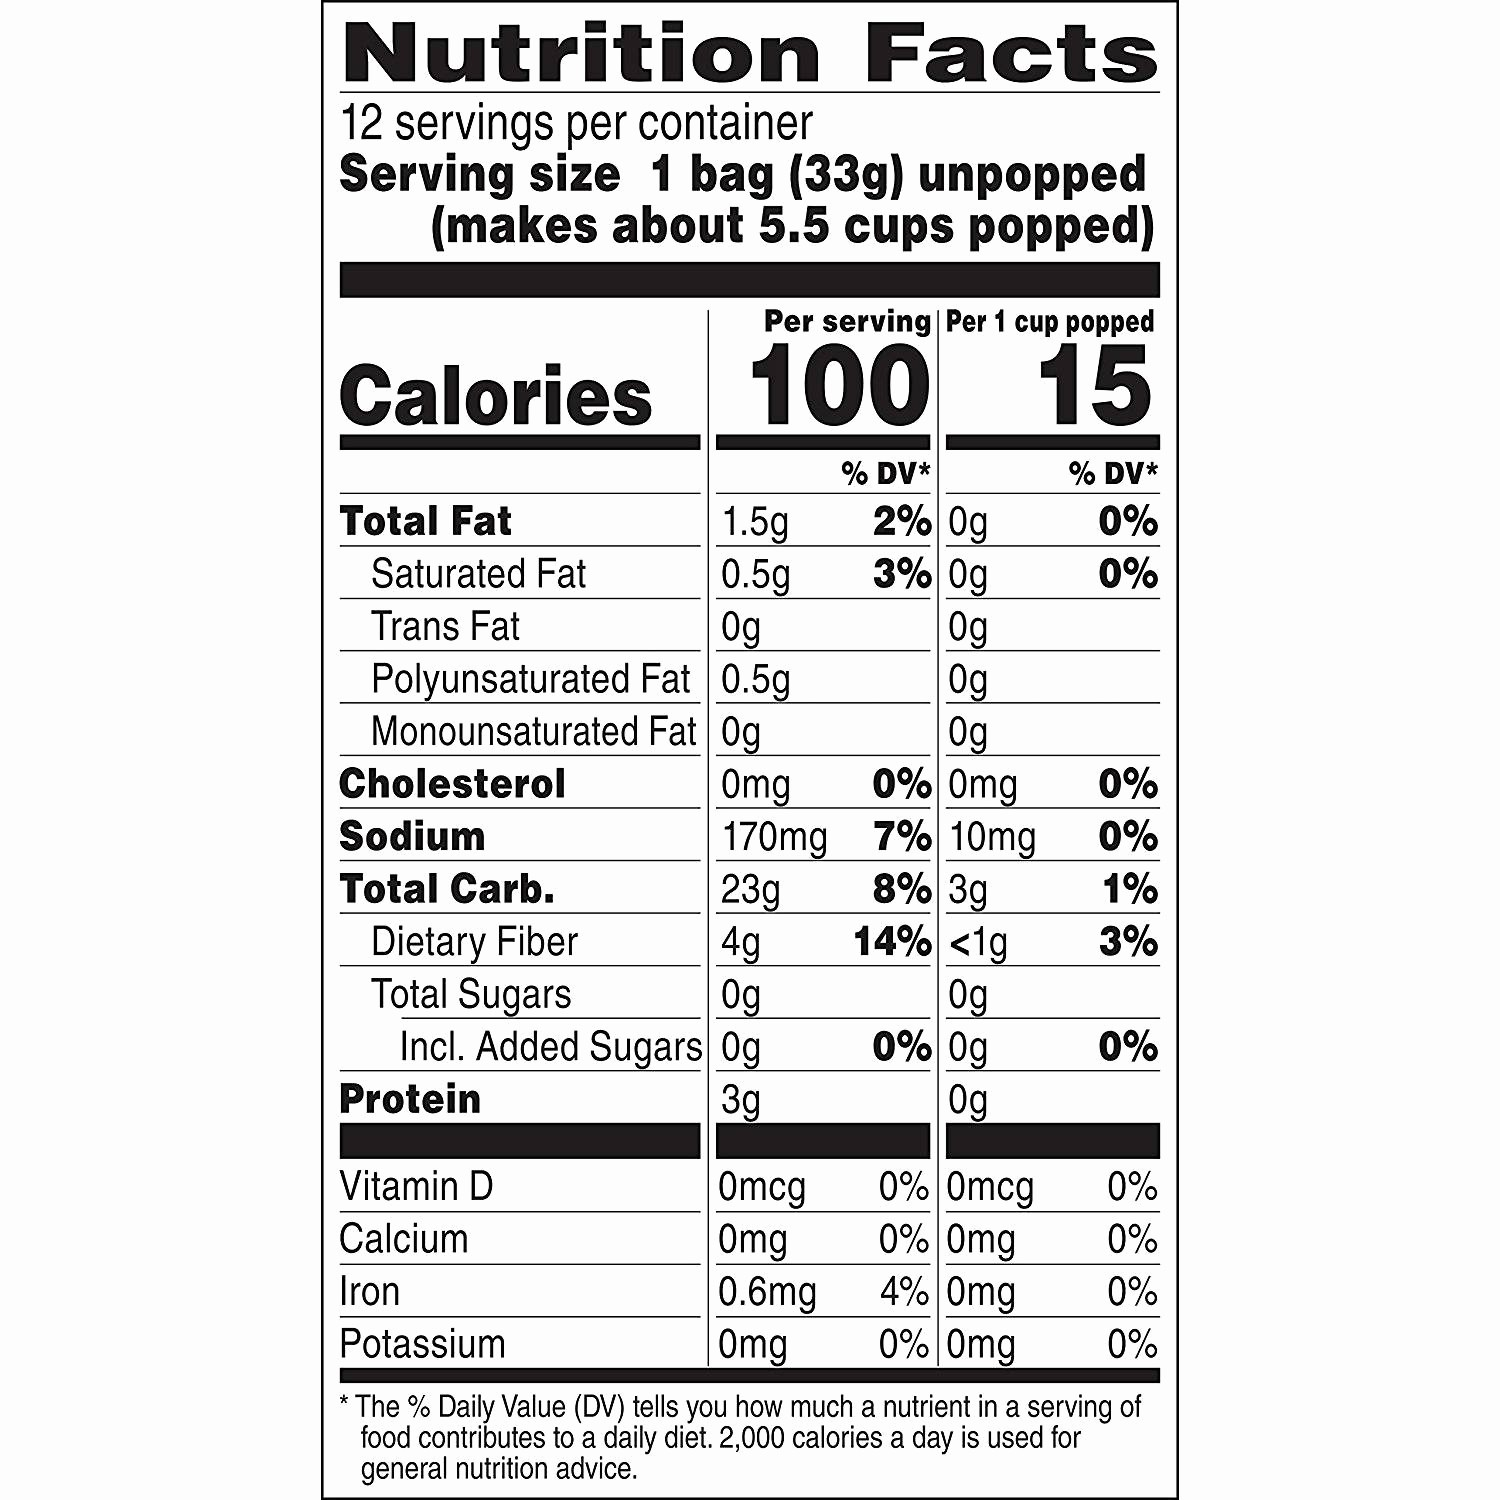 Nutrition Facts Template Excel Download Inspirational Nutrition Facts Label Template Excel